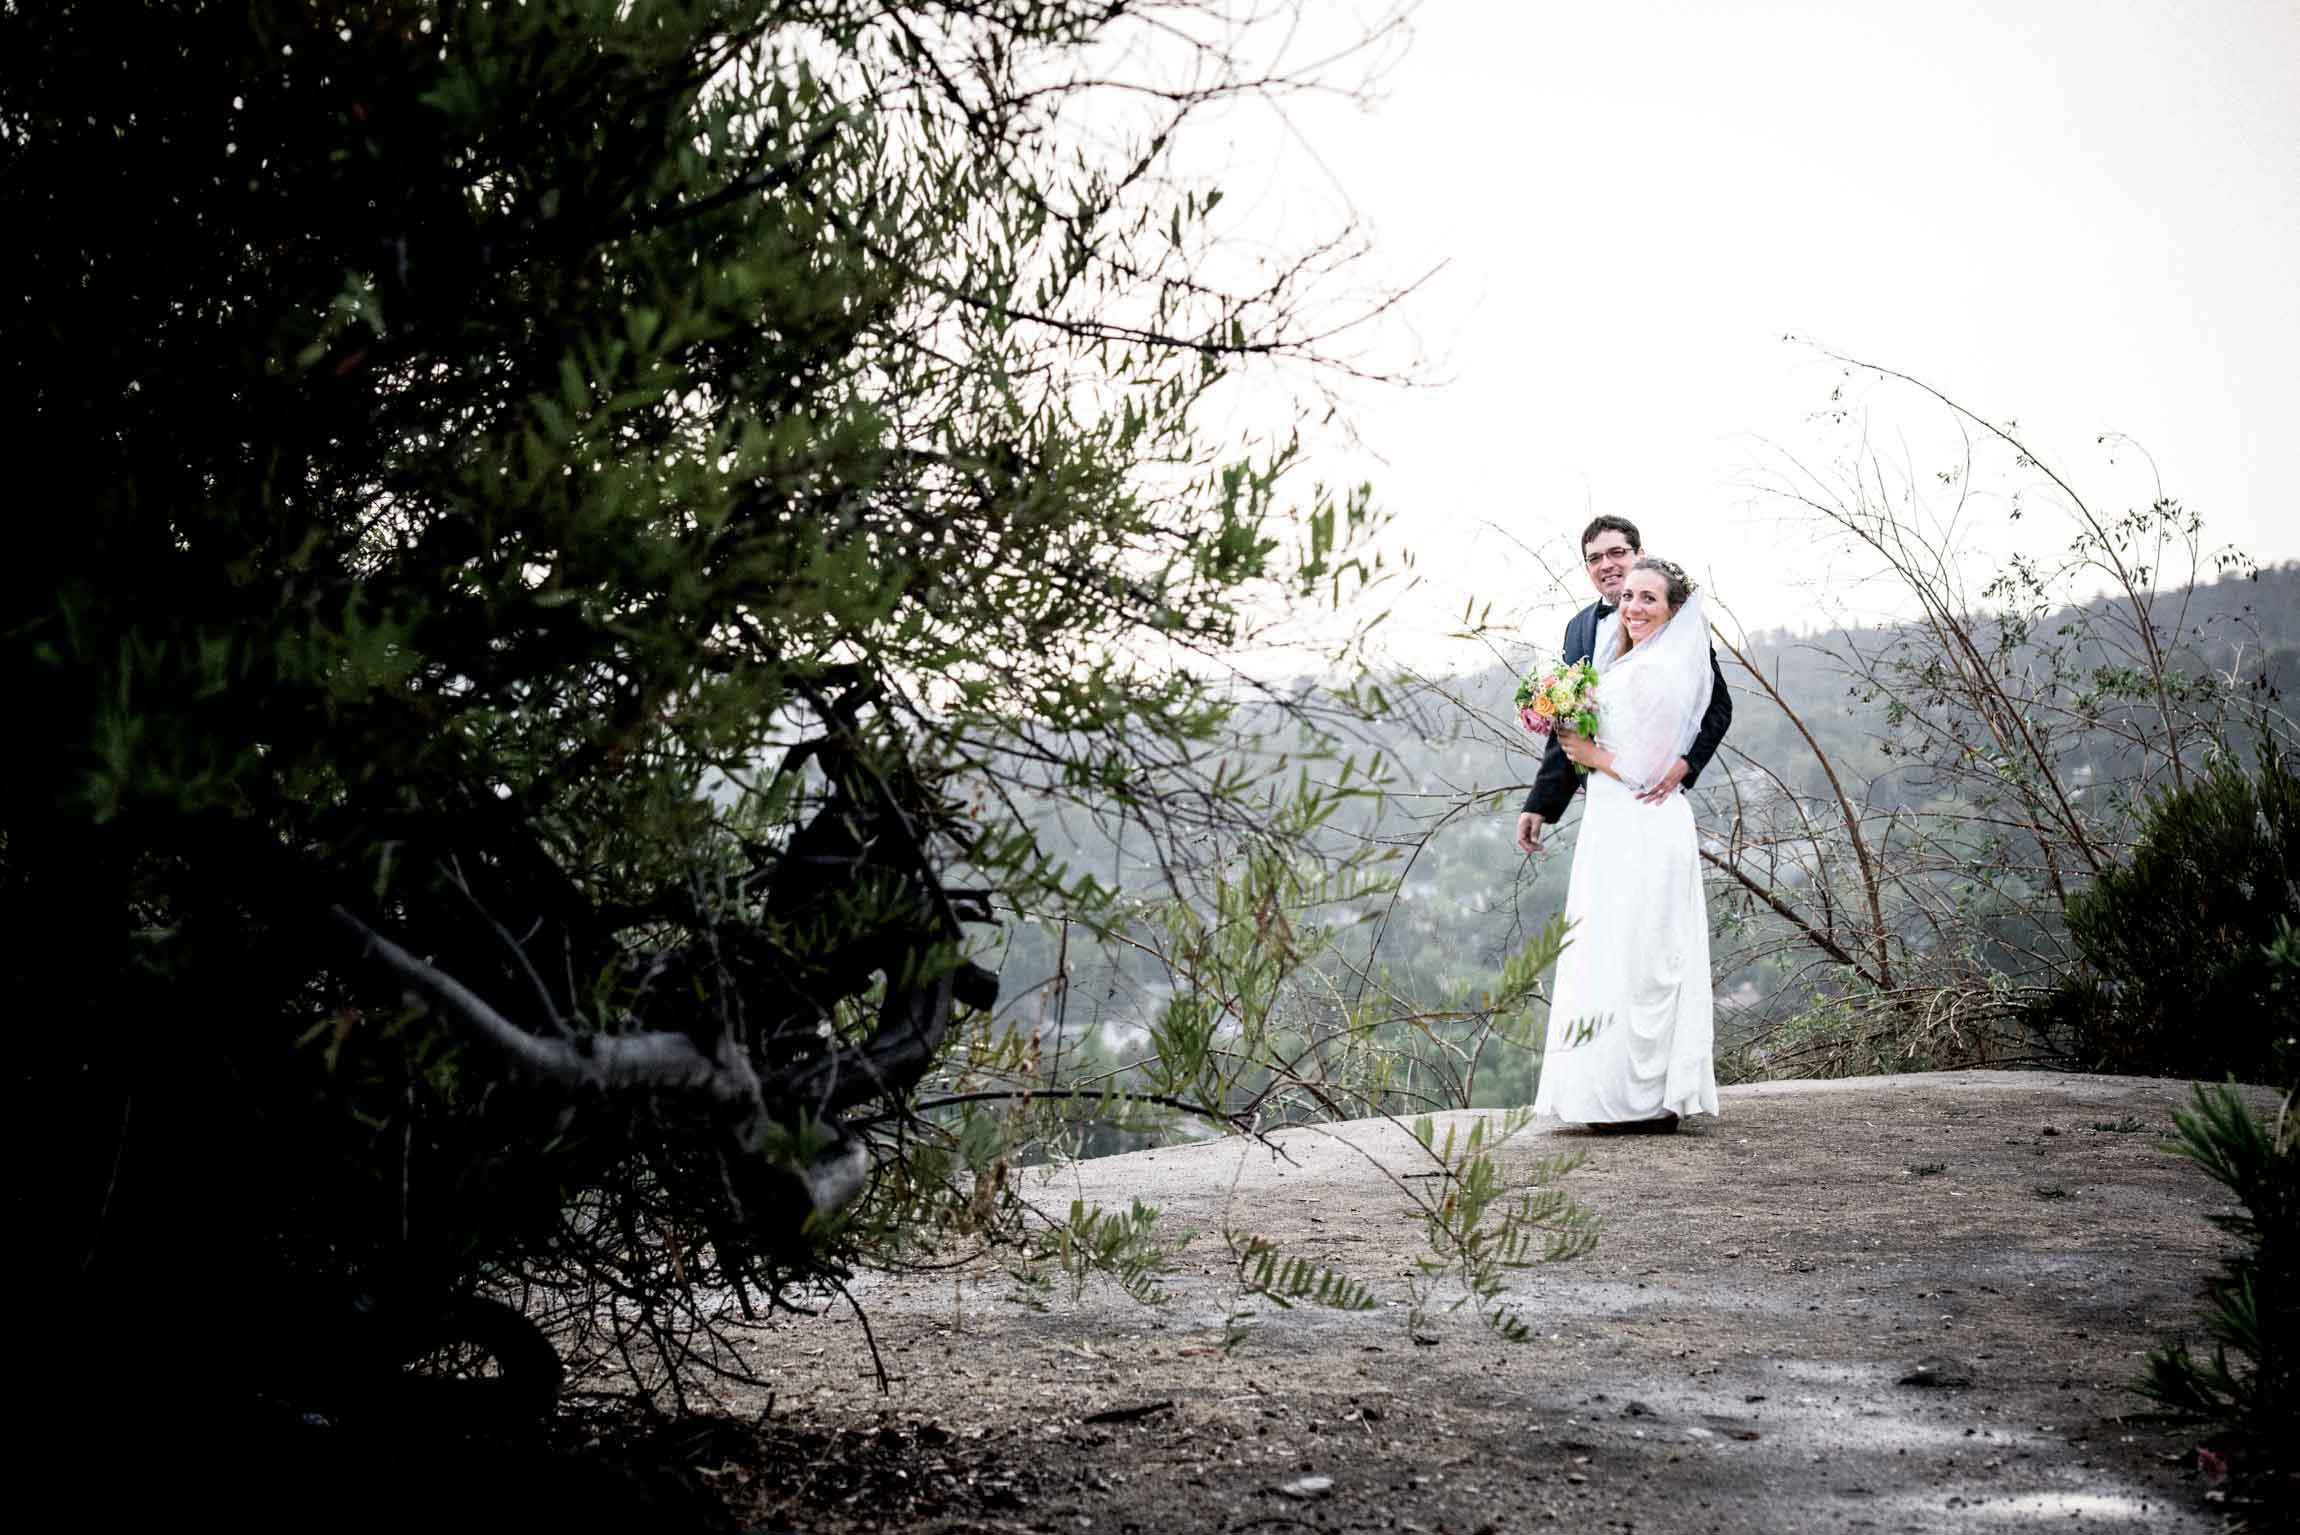 001_lacanada_wedding_losangeles_photography.jpg